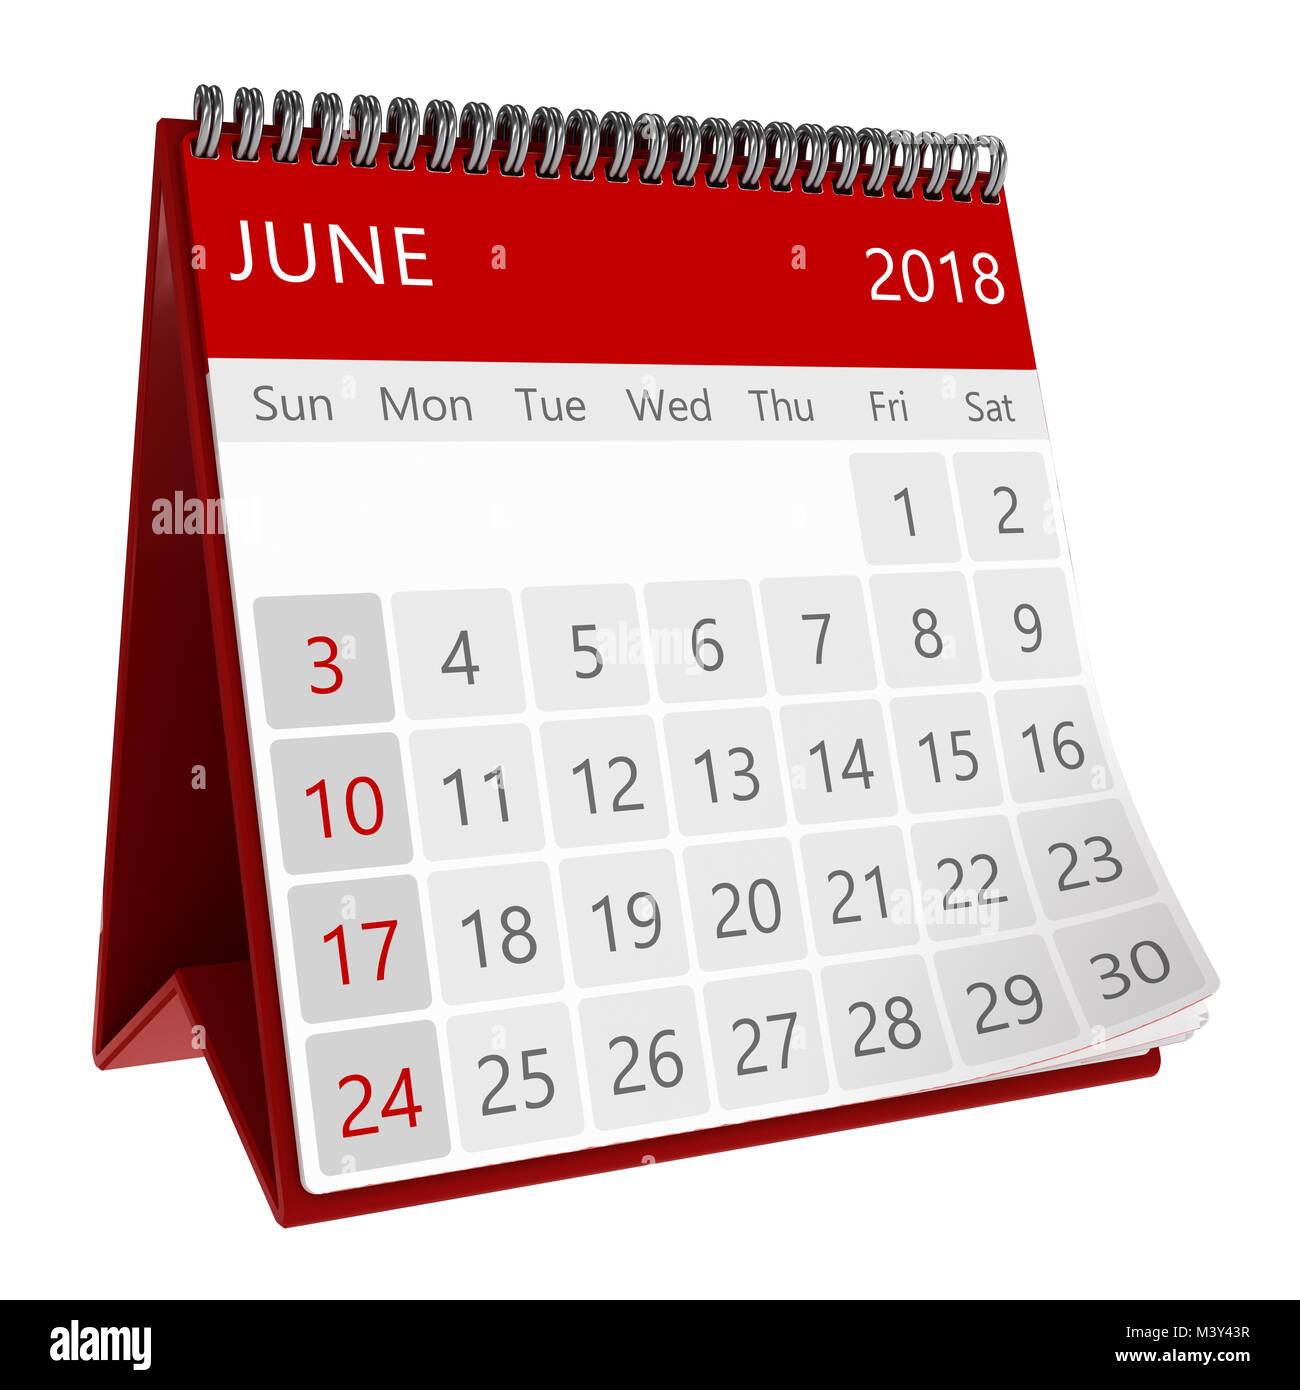 3d illustration of red monthly calendar isolated page june 2018